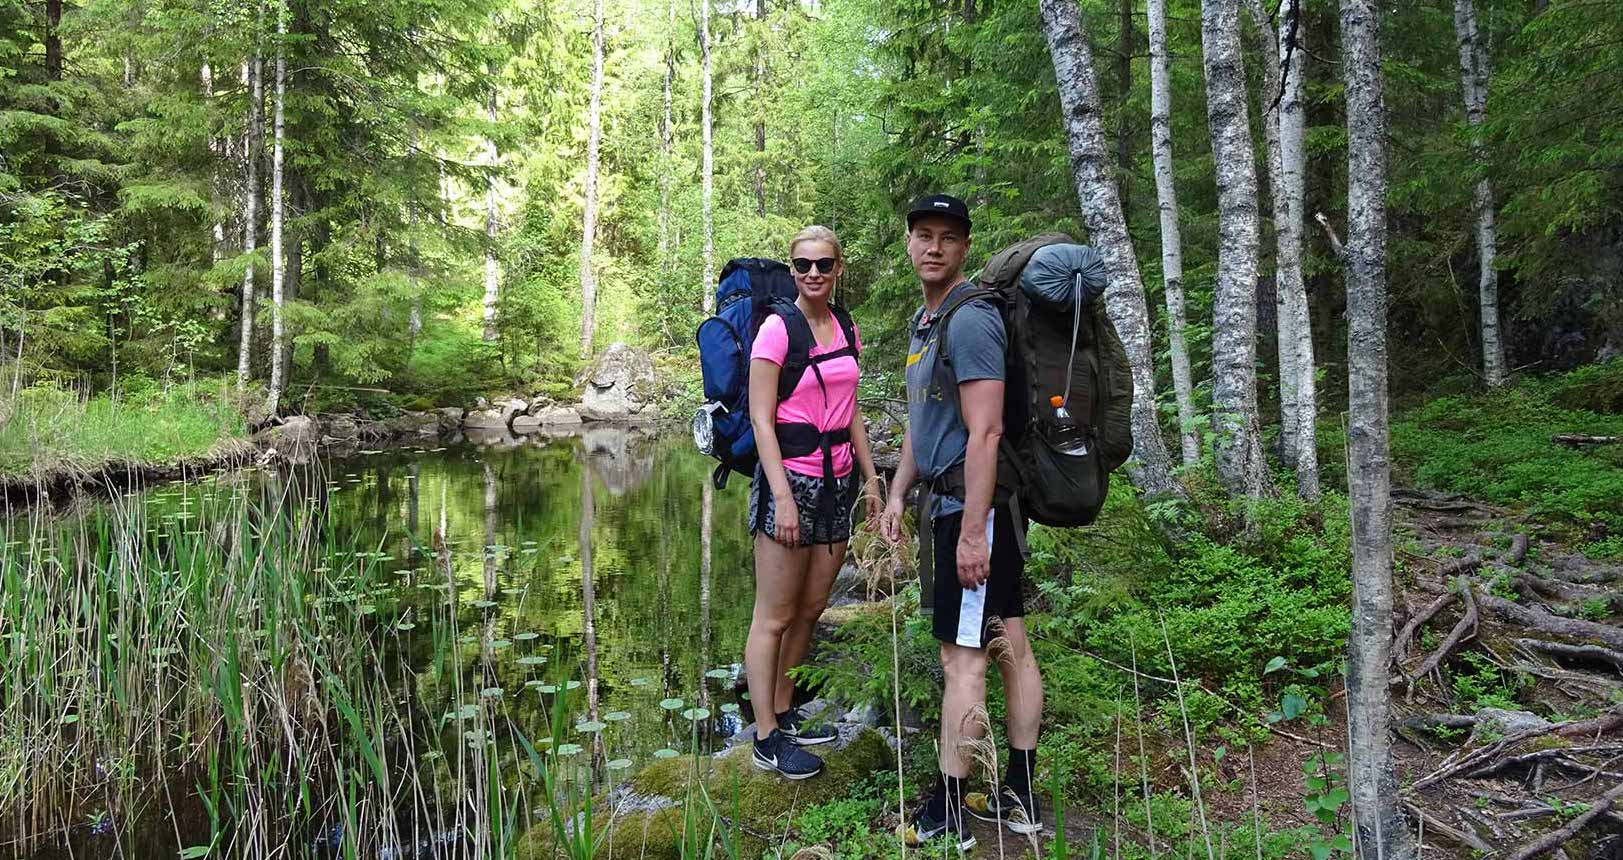 Hiking in a Finnish national park